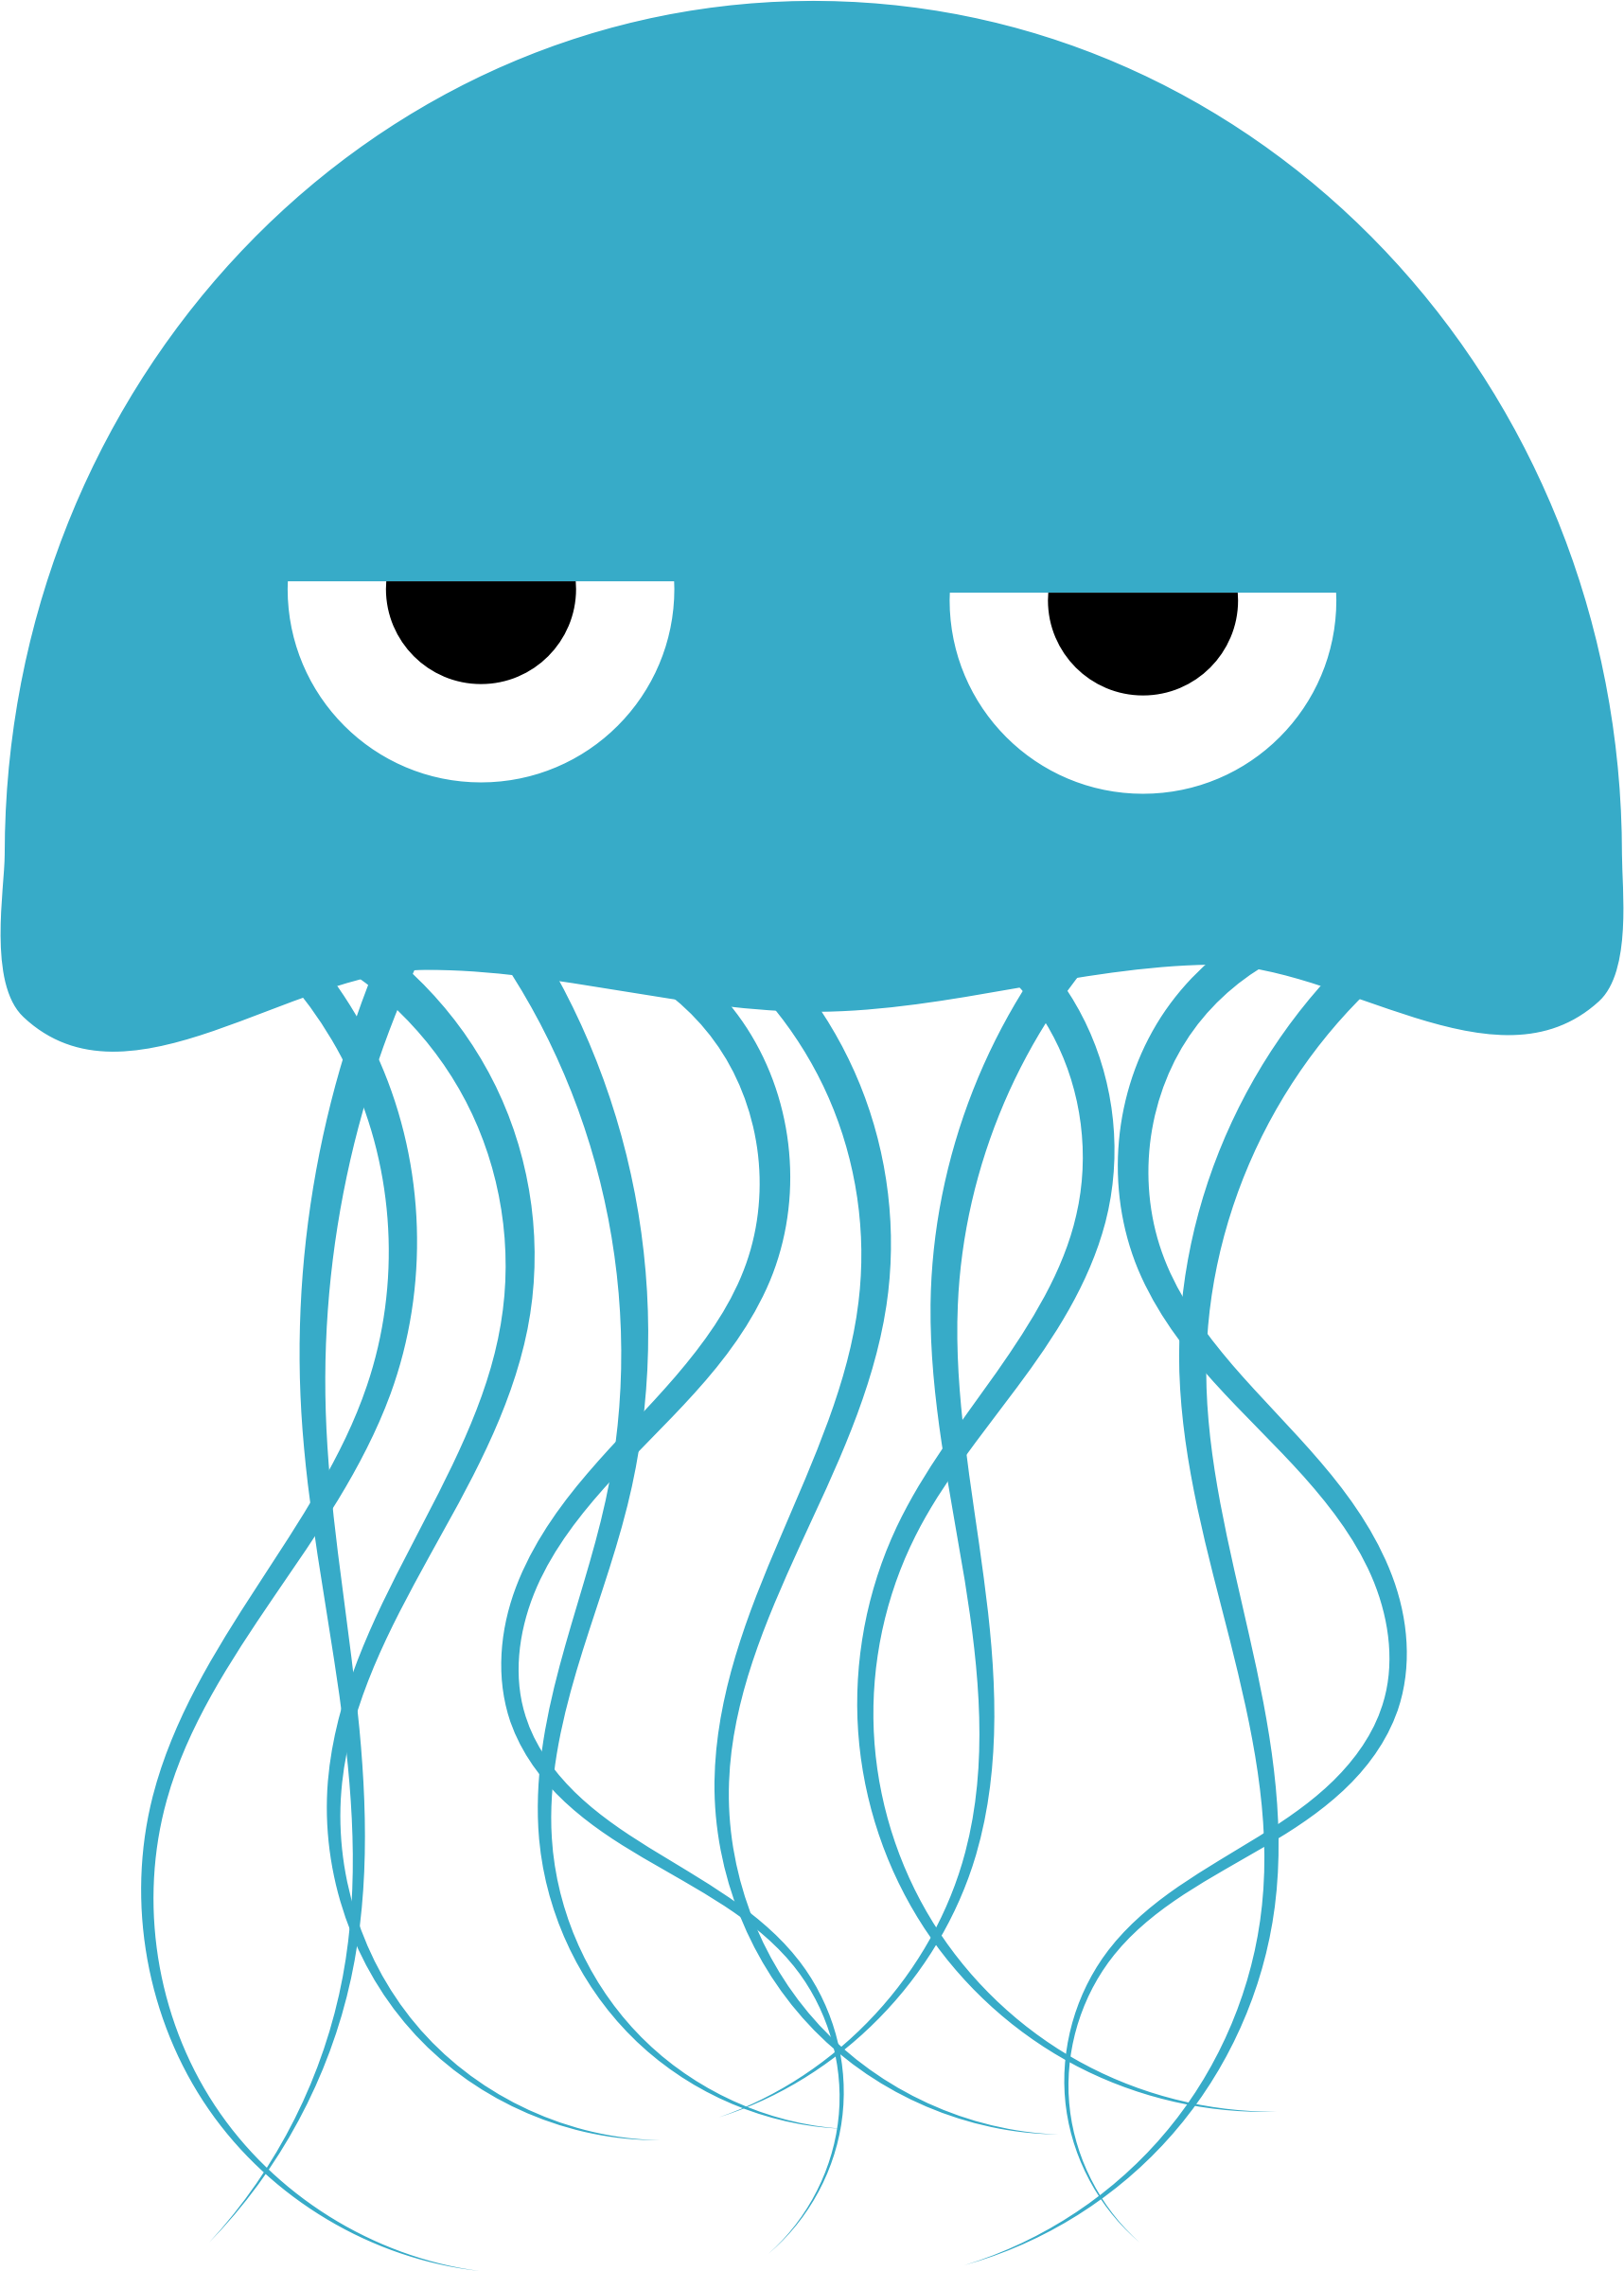 Jelly fish black and white clipart clip art transparent A Jellyfish with attitude. Not the friendliest of Squishies. By ... clip art transparent